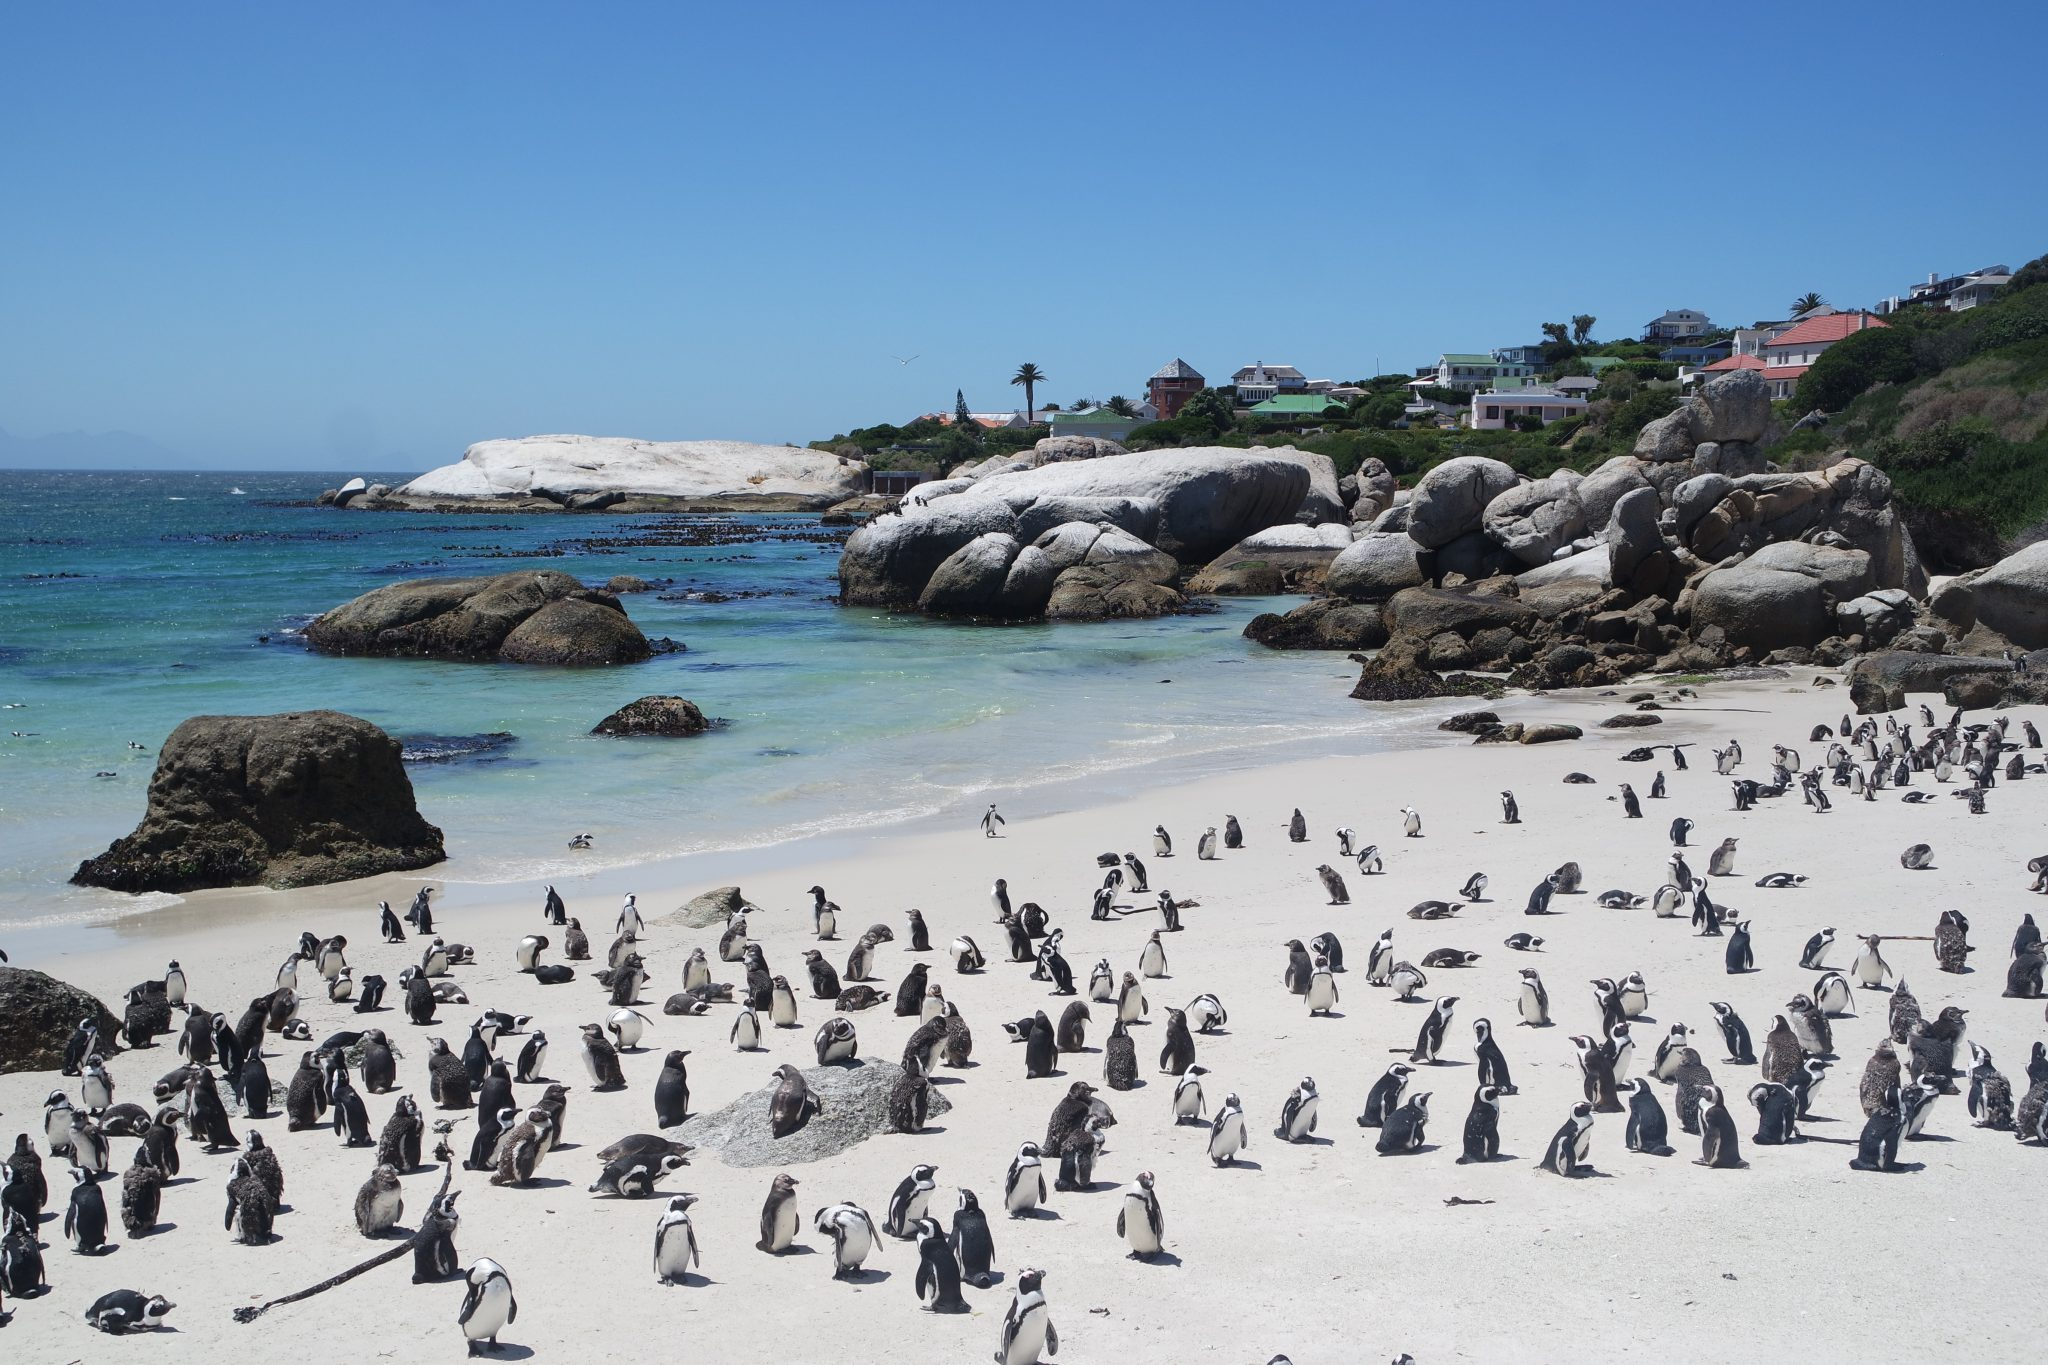 penguin-colony-at-boulders beach-in-simons-town-cape town south africa